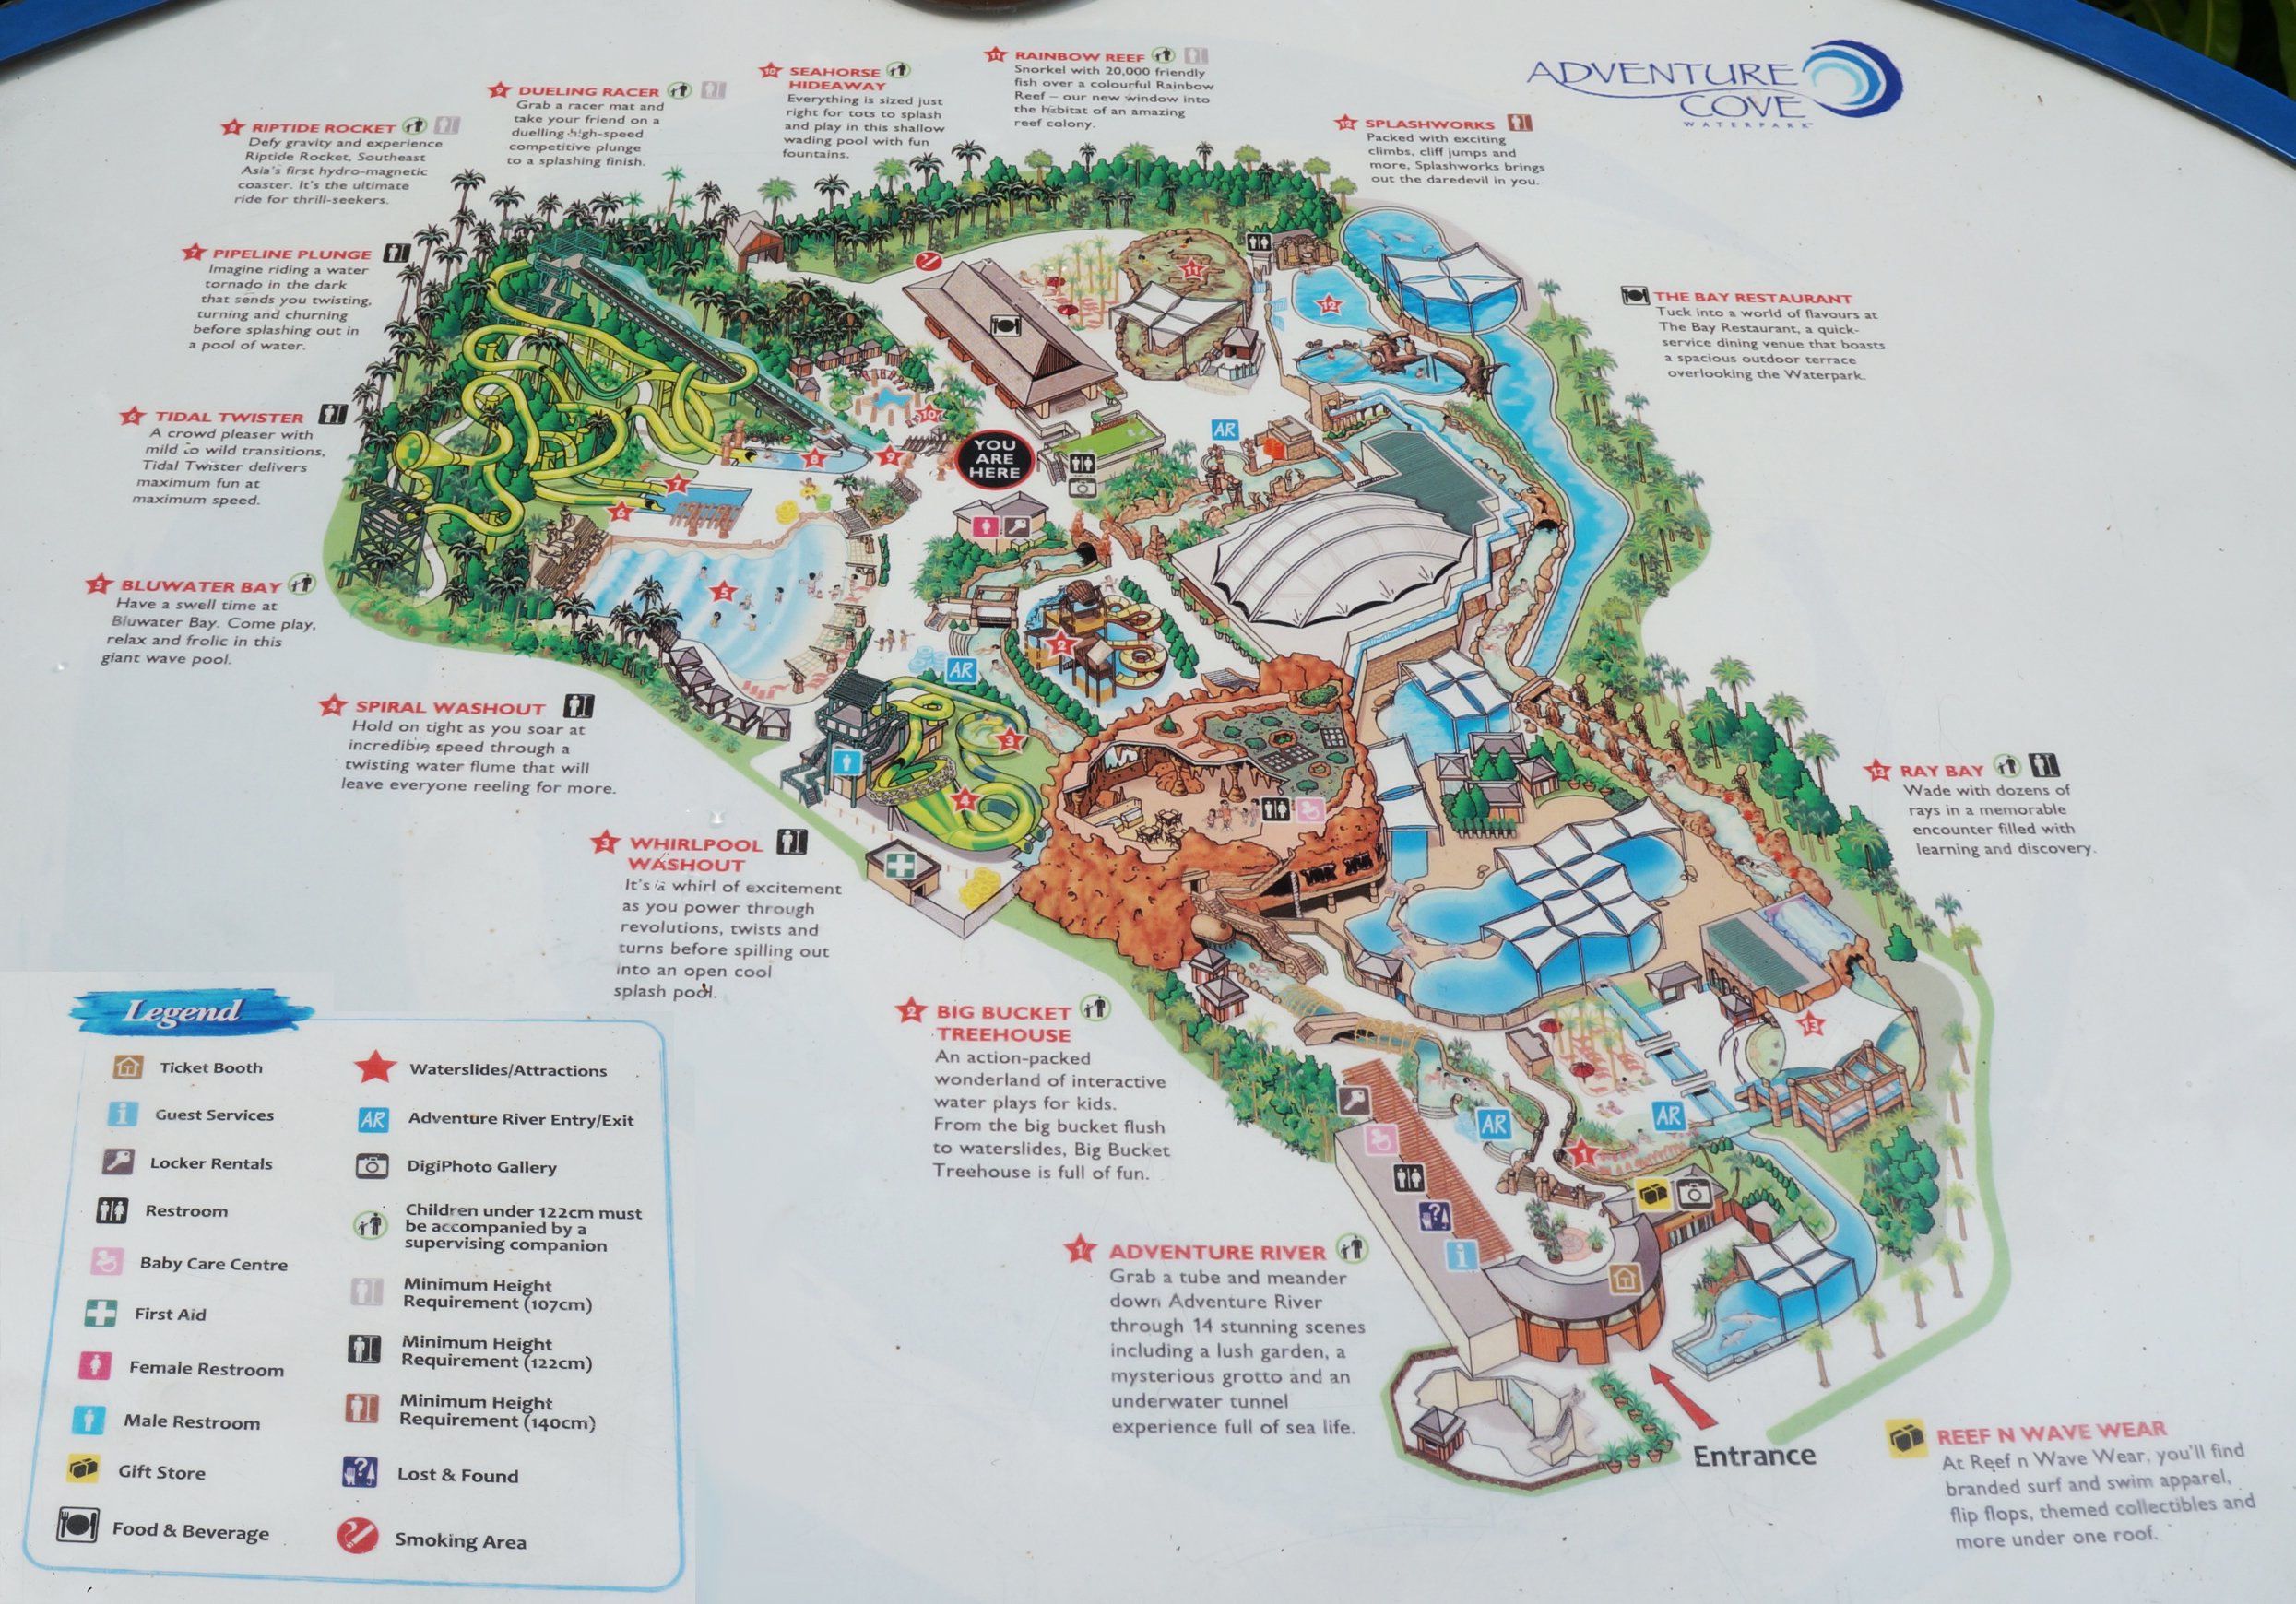 6 tips to beat the queues at adventure cove waterpark at resorts adventure cove map guide avoid crowds fast track gumiabroncs Gallery